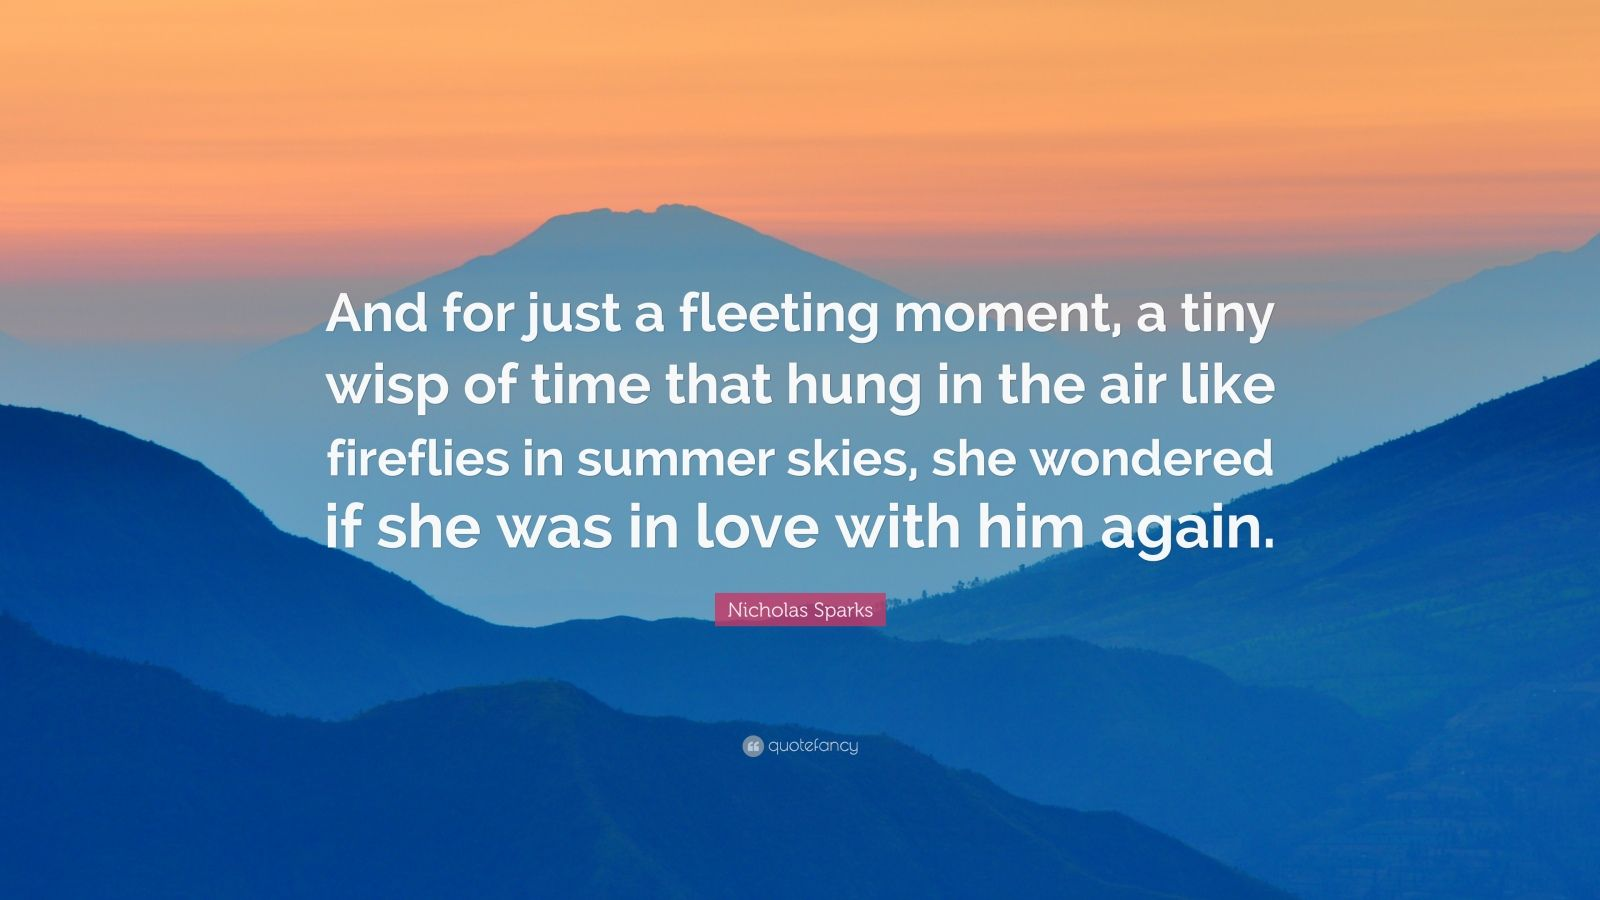 "Nicholas Sparks Quote: ""And for just a fleeting moment, a tiny wisp of time that hung in the air like fireflies in summer skies, she wondered if she was in love with him again."""